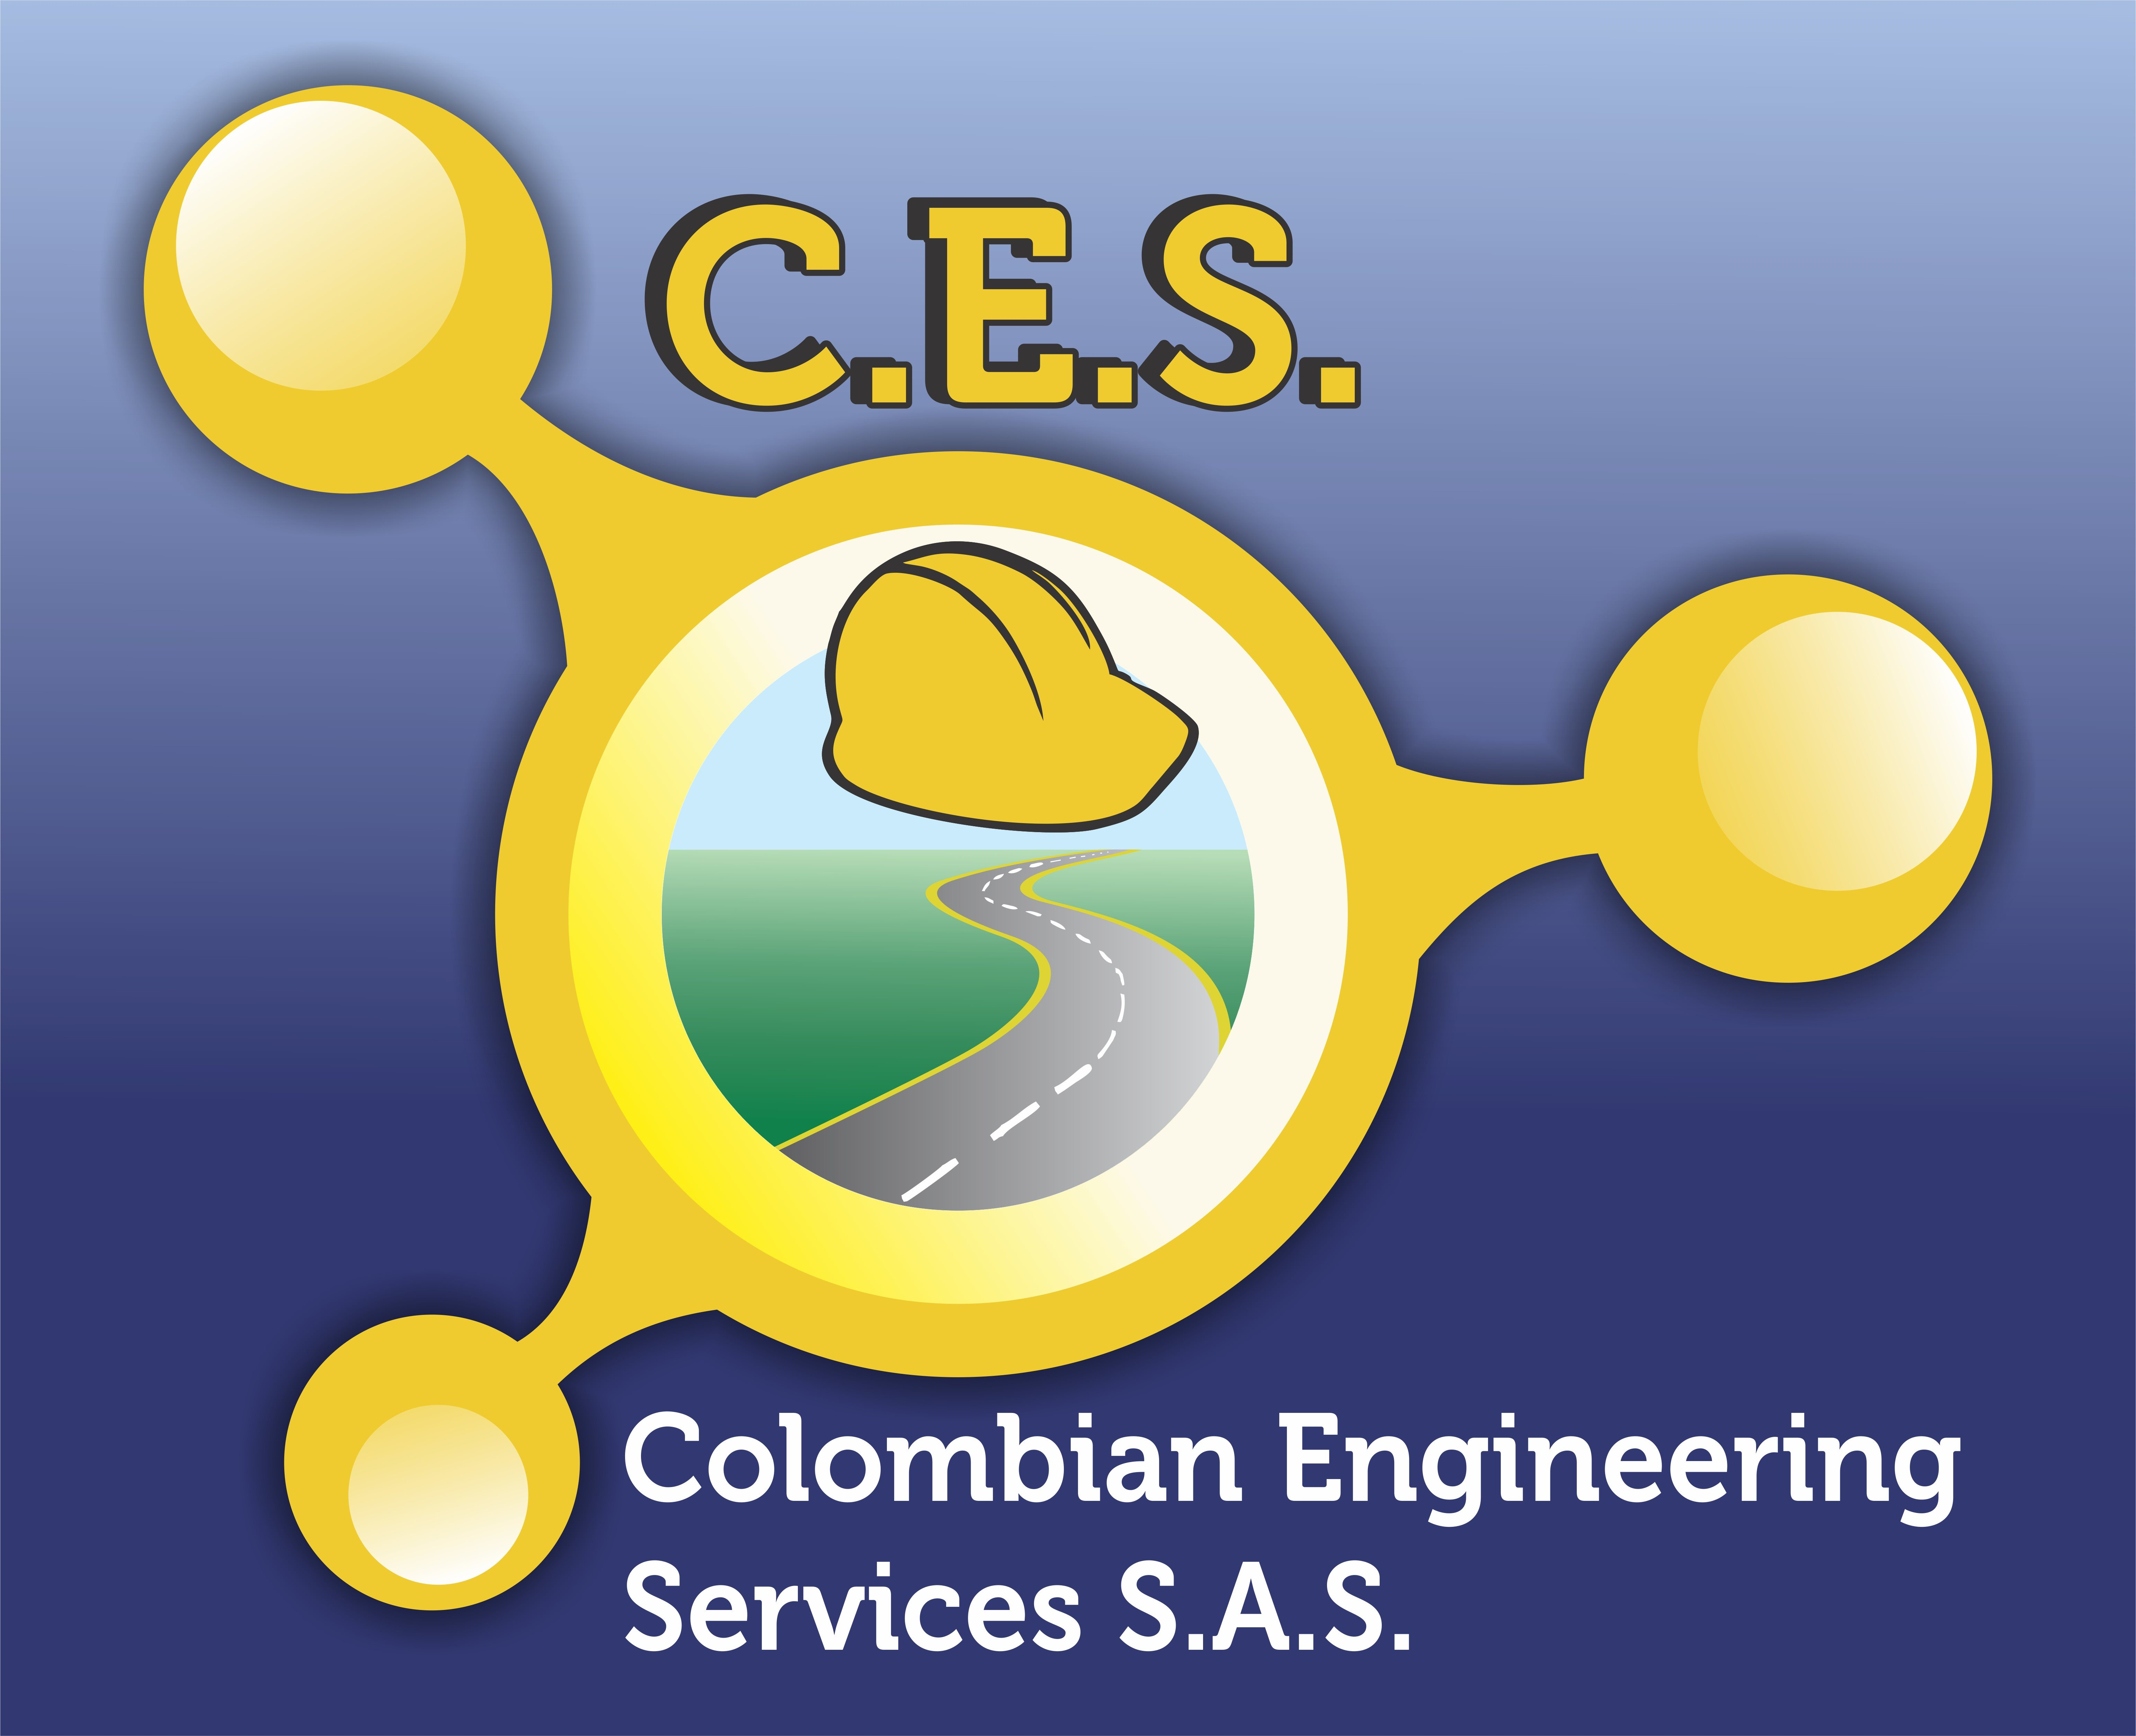 Colombian Engineering Services S.A.S.